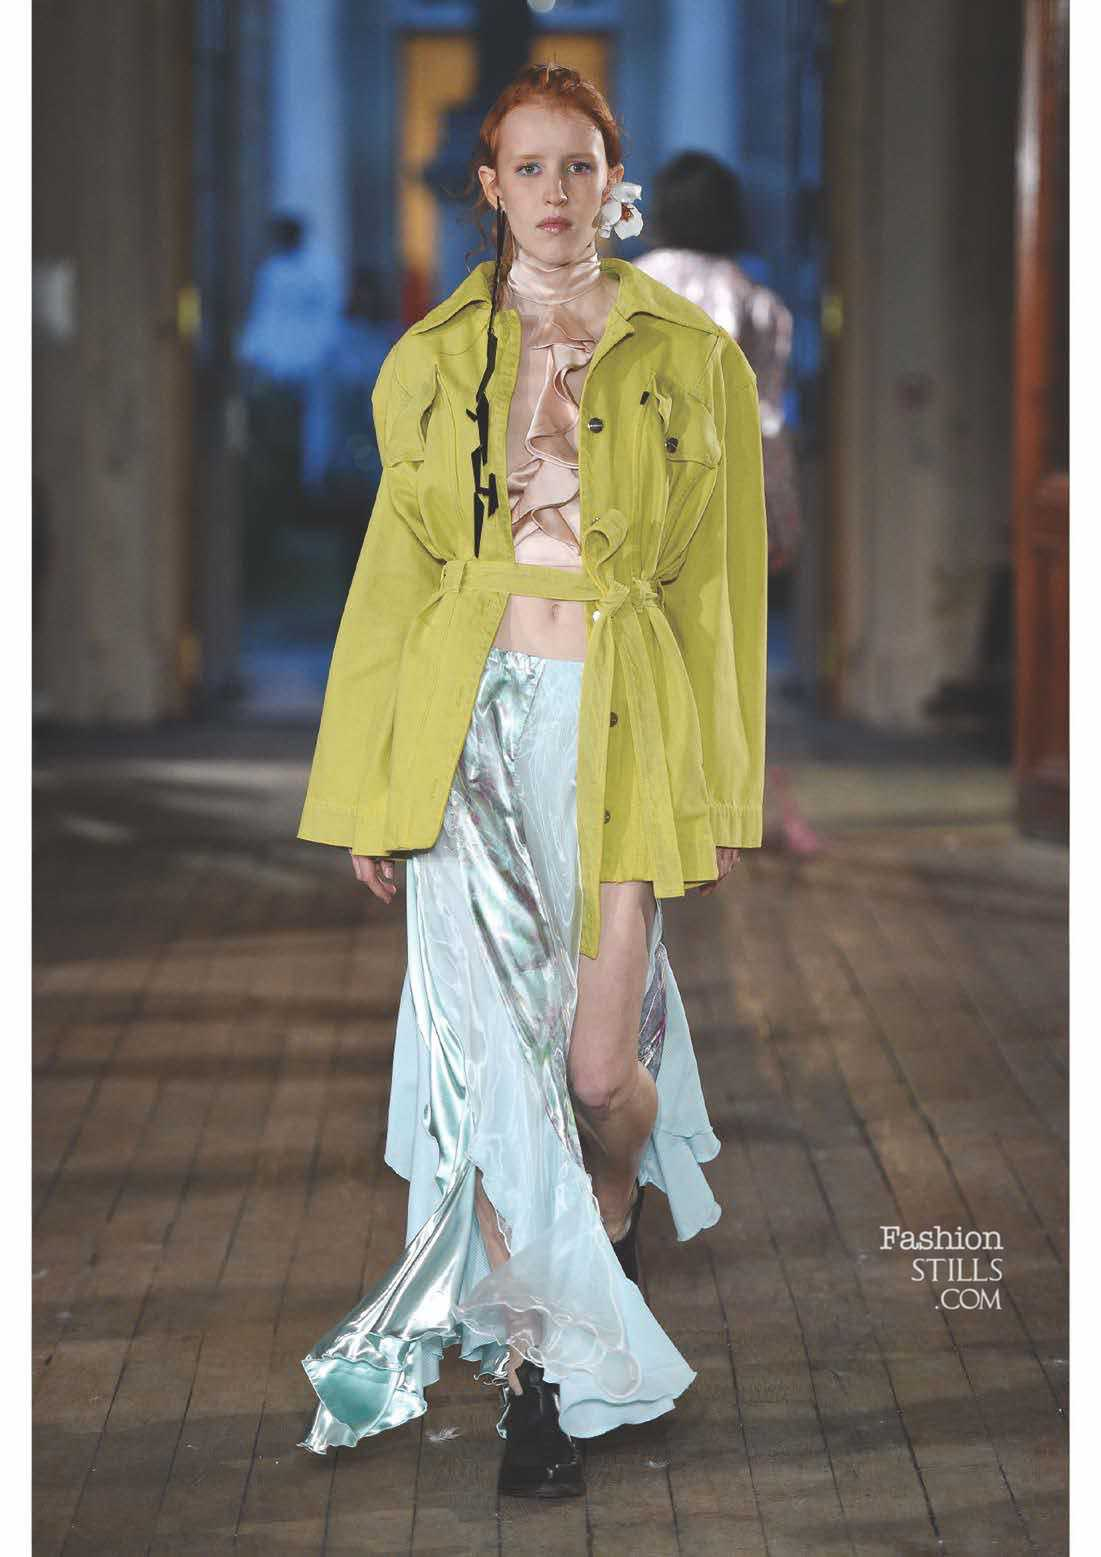 Neith Nyer_1513681575_93_look-book-_-press-release-ss18-neith-nyer-016.jpg